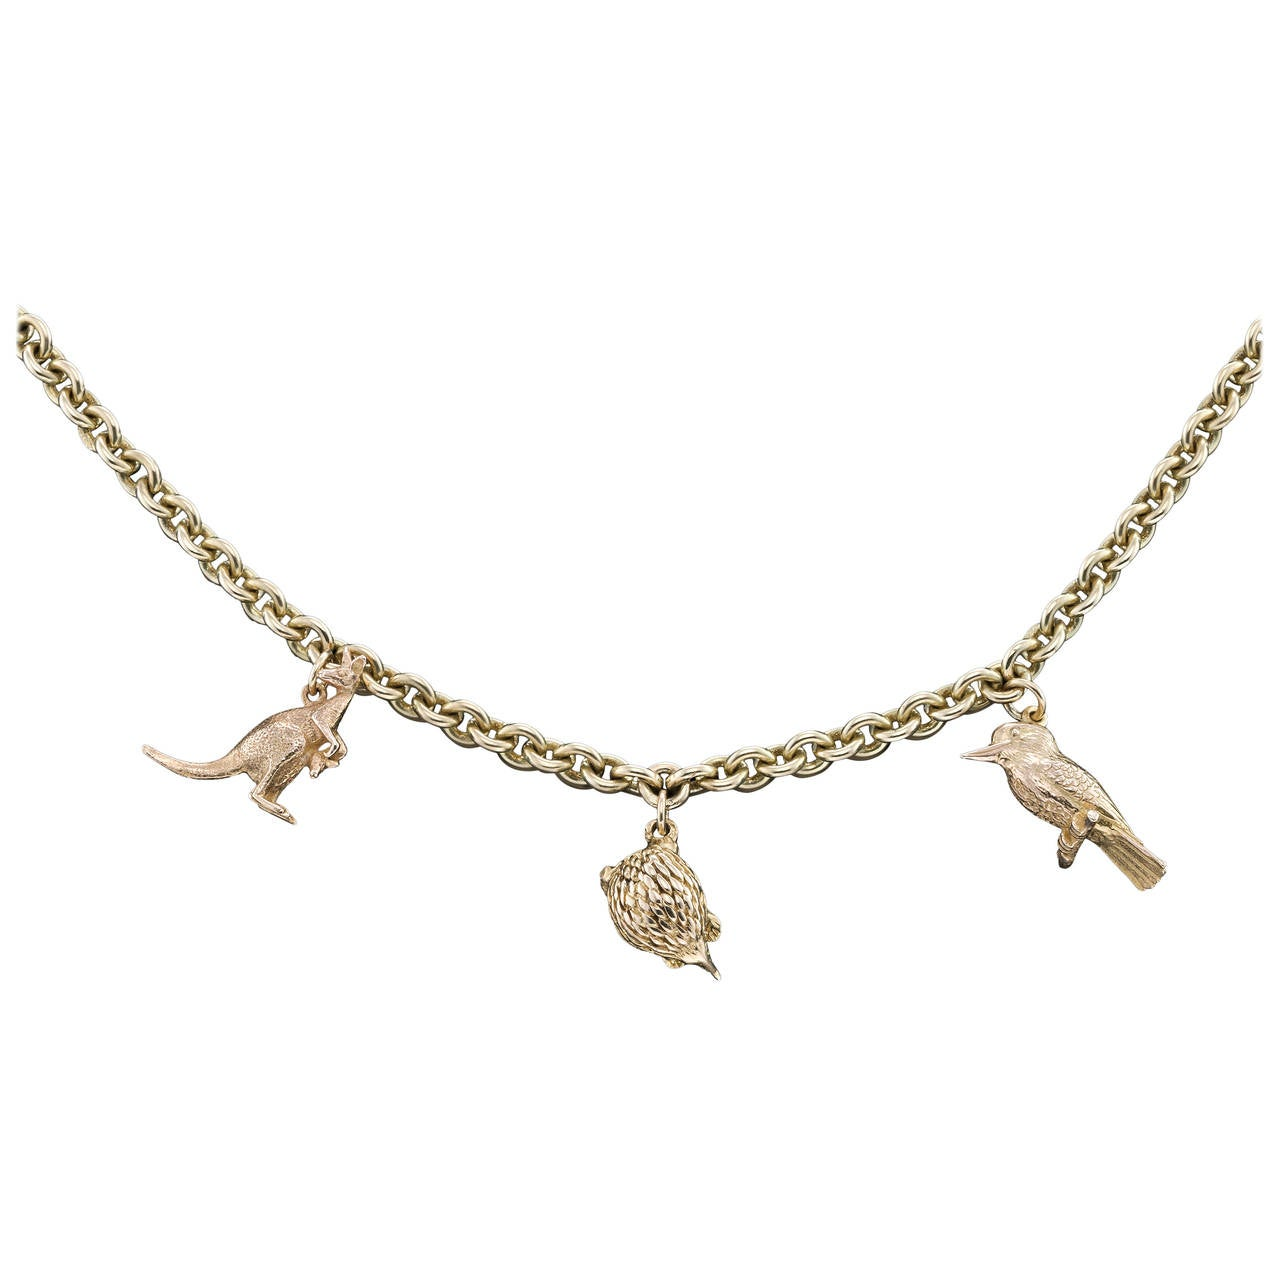 1960s australian animal gold charm bracelet at 1stdibs